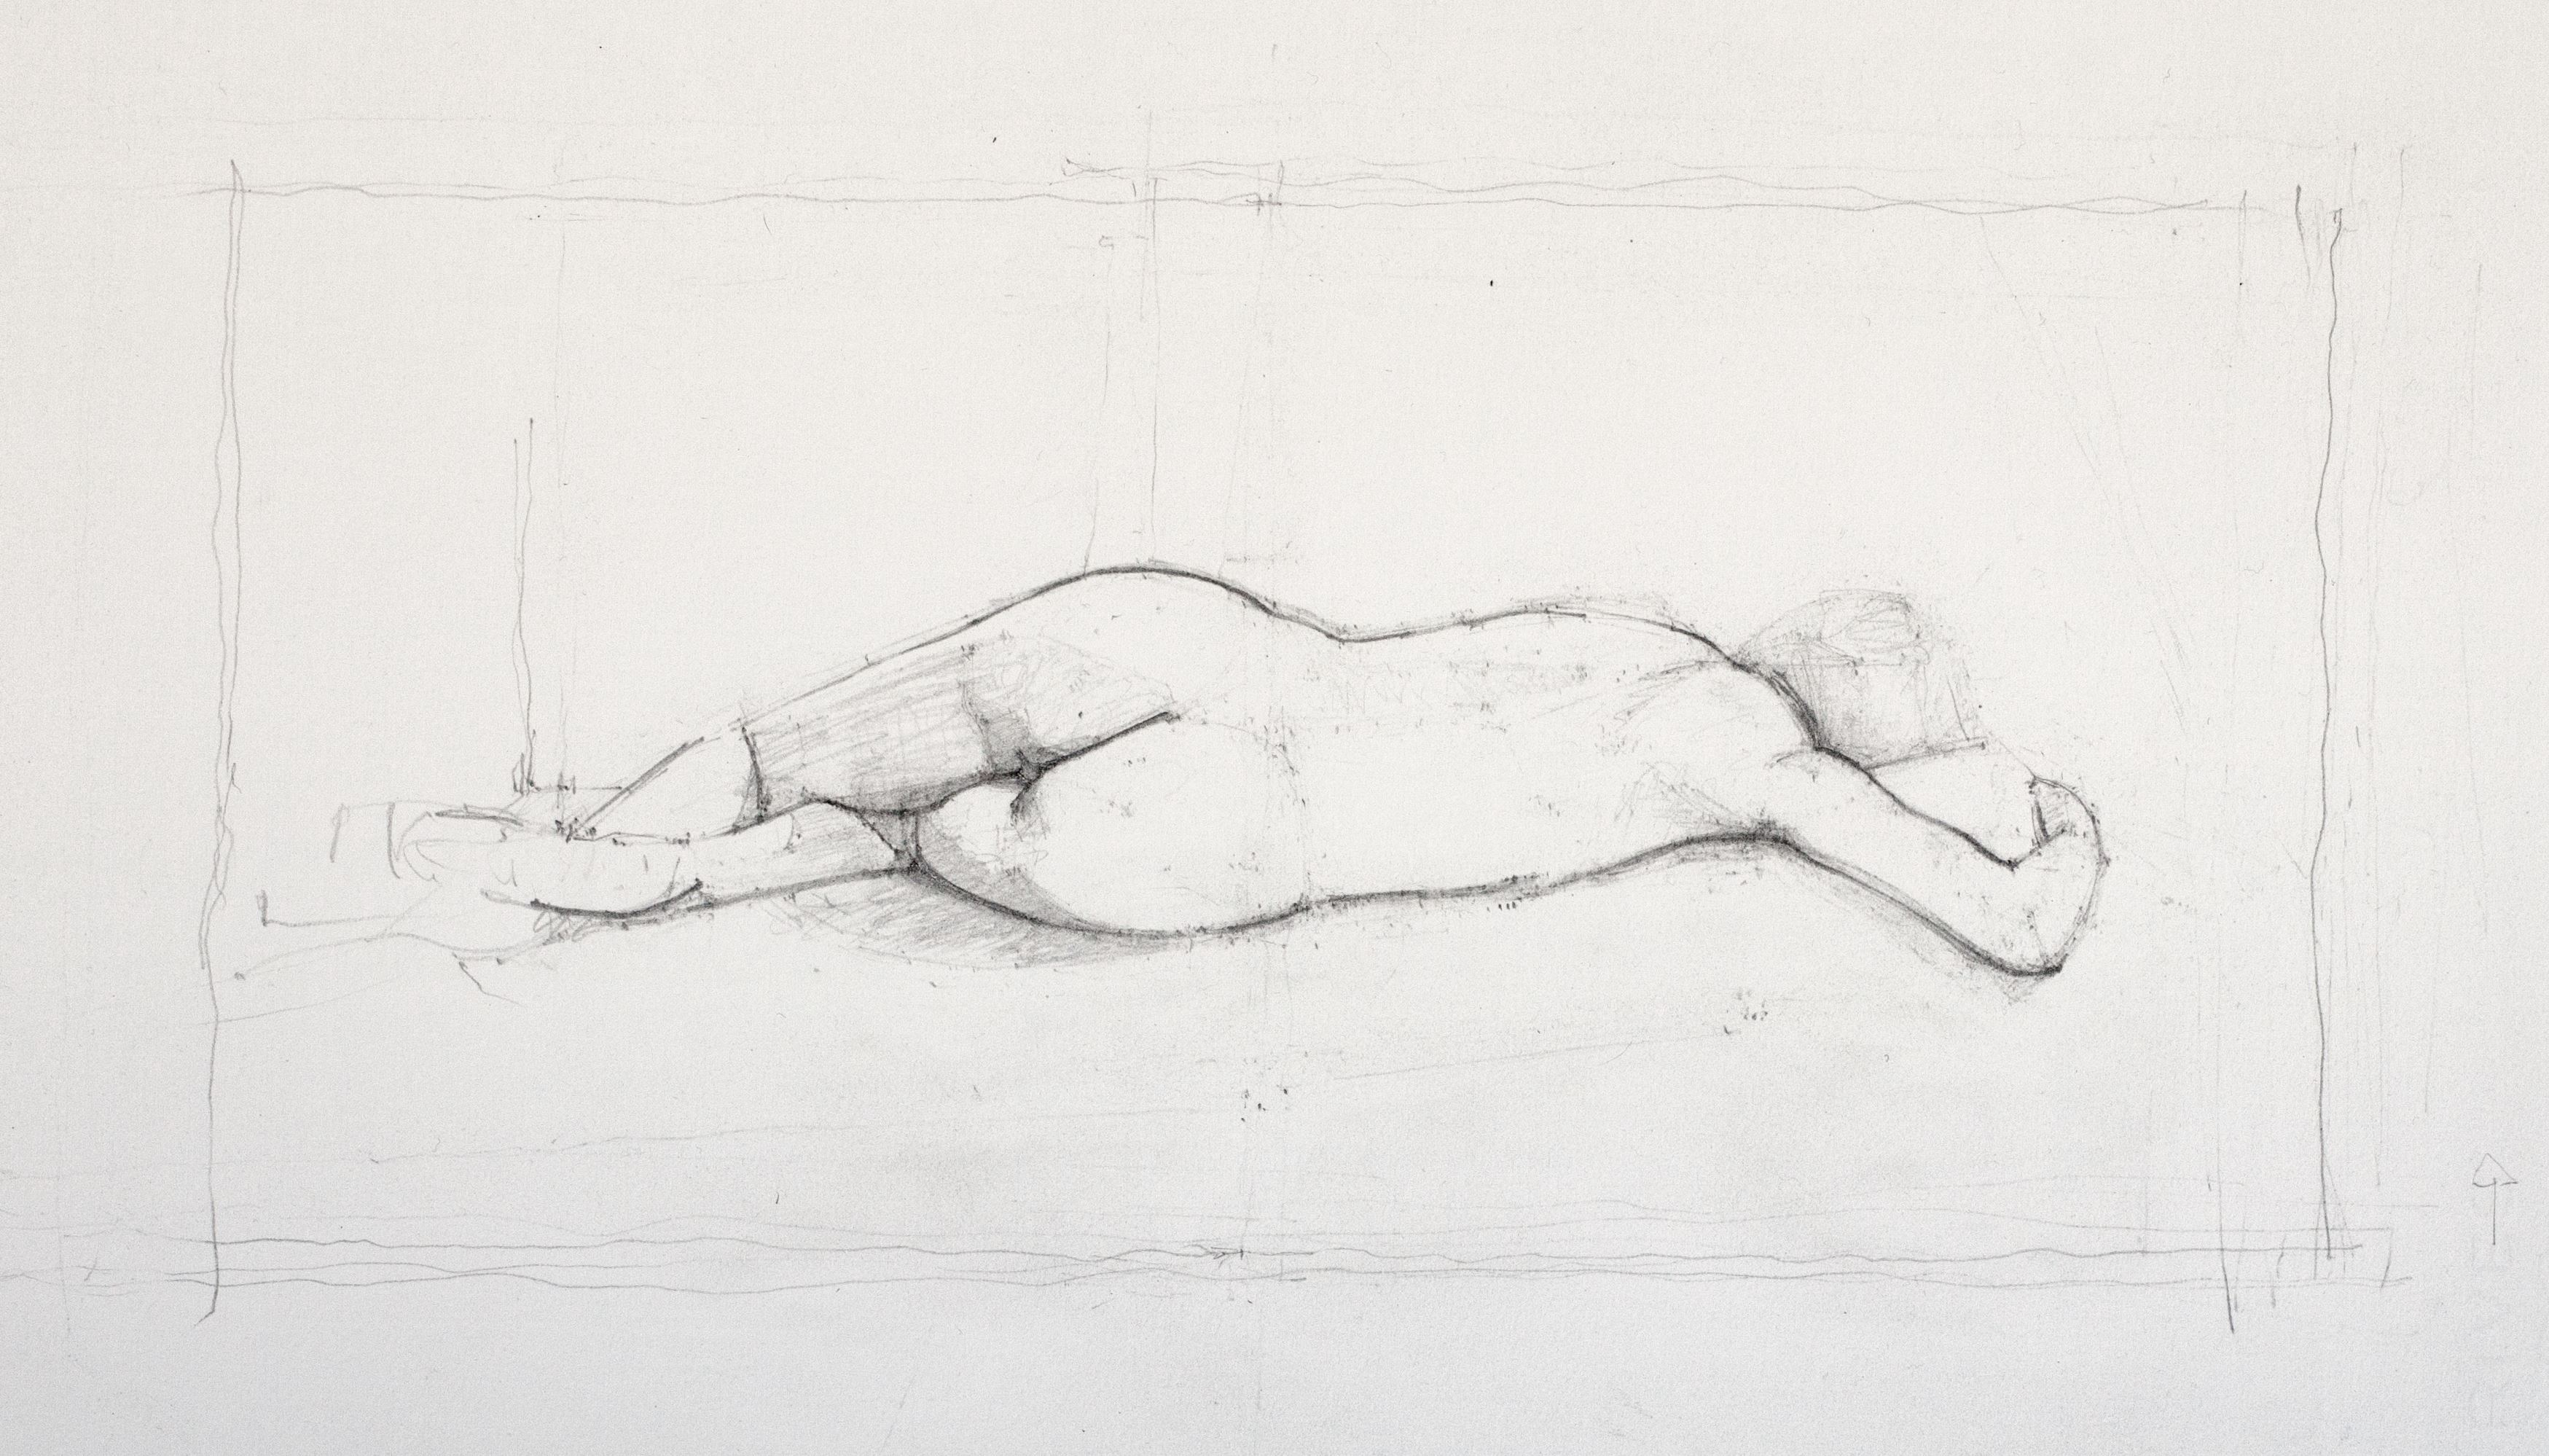 Reclining nude, V shape arm, 2012